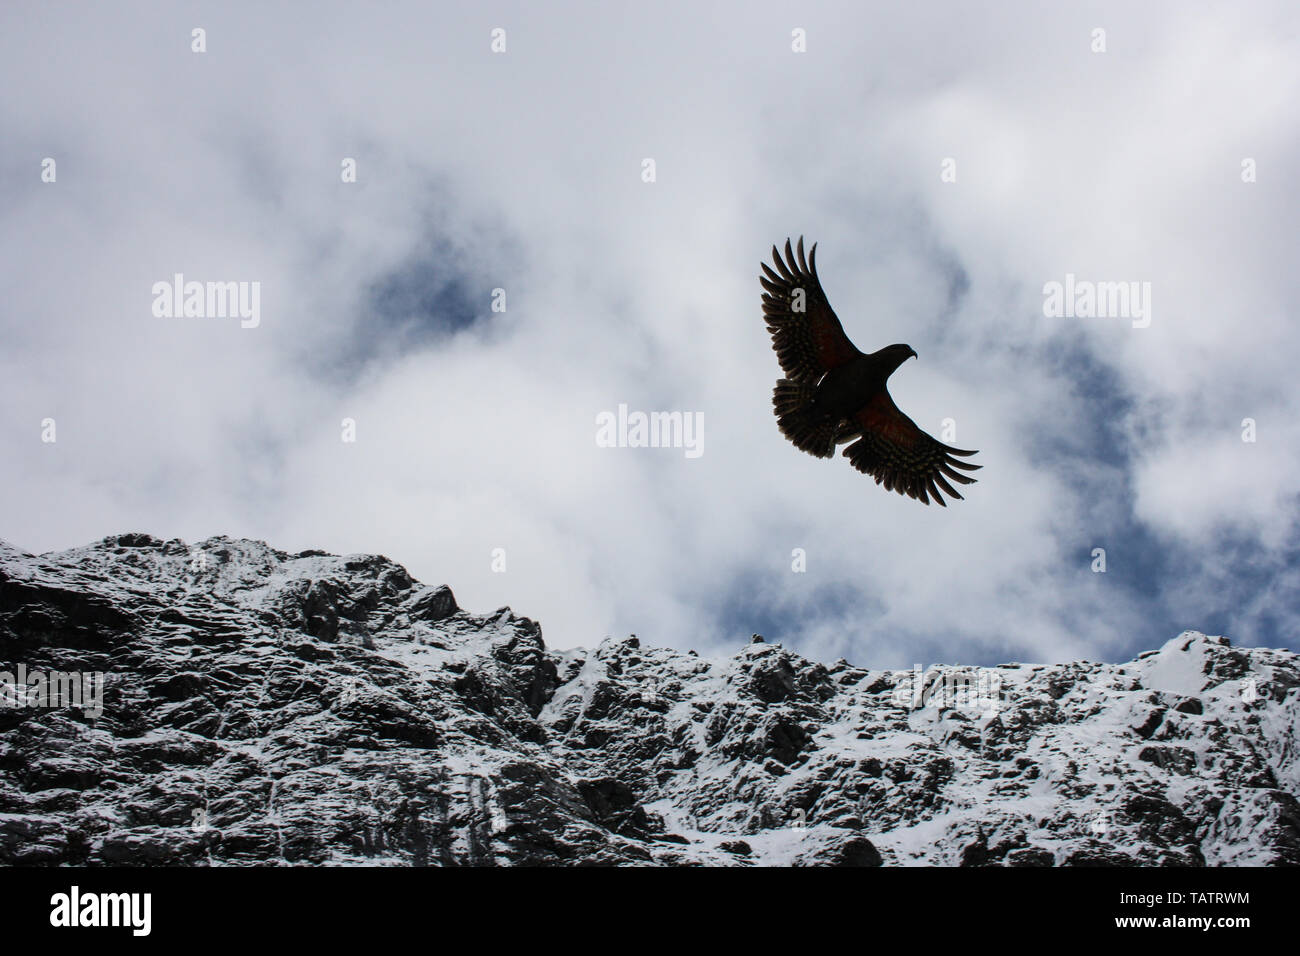 A kea parrot (Nestor Notabilis), a bird endangered of extinction, flying in front of a snow-covered mountain range on the South Island, New Zealand - Stock Image